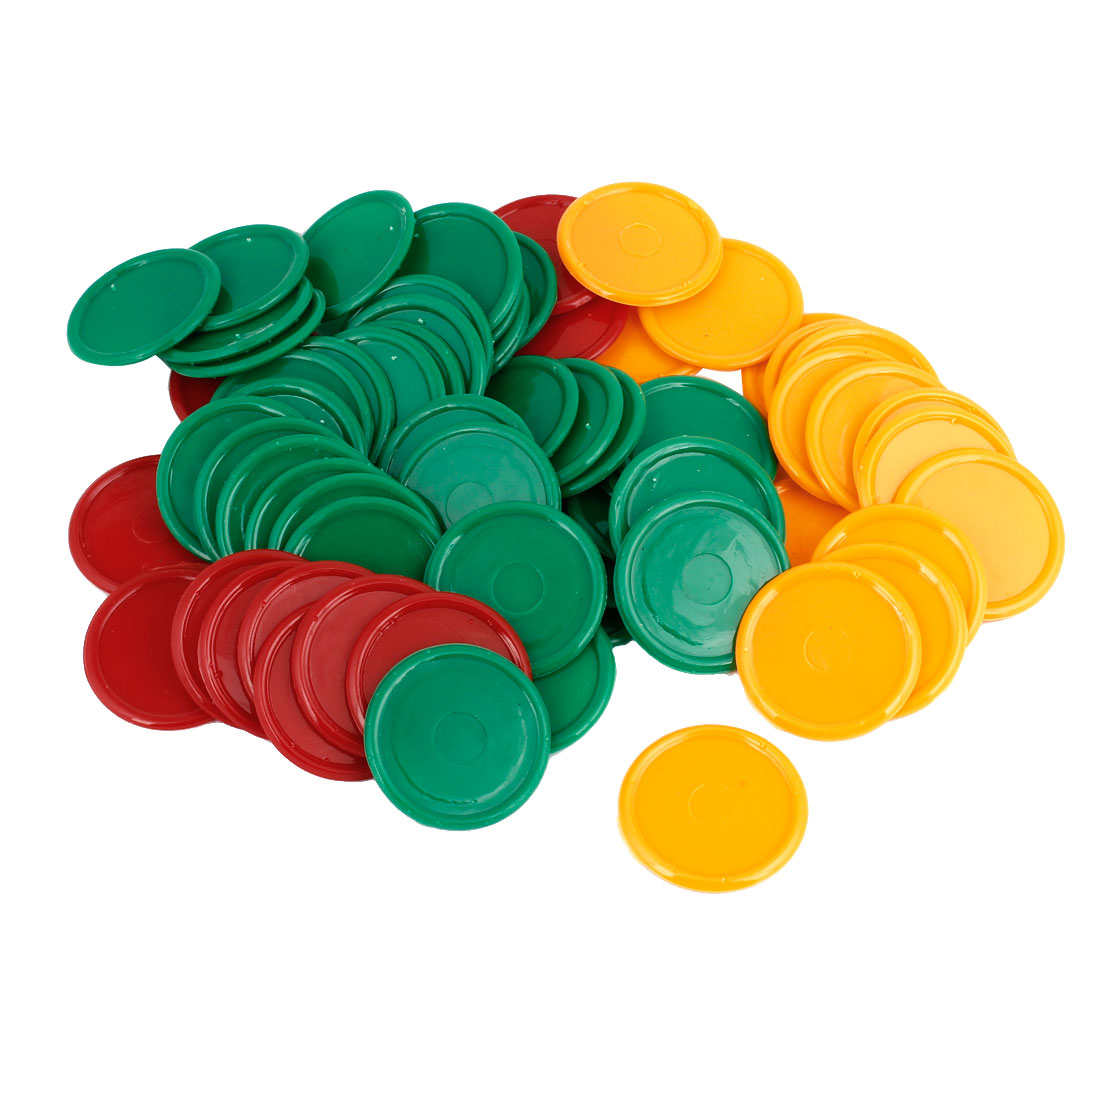 68 Pcs Green Yellow Red Plastic Round Shape Pocker Chips Set